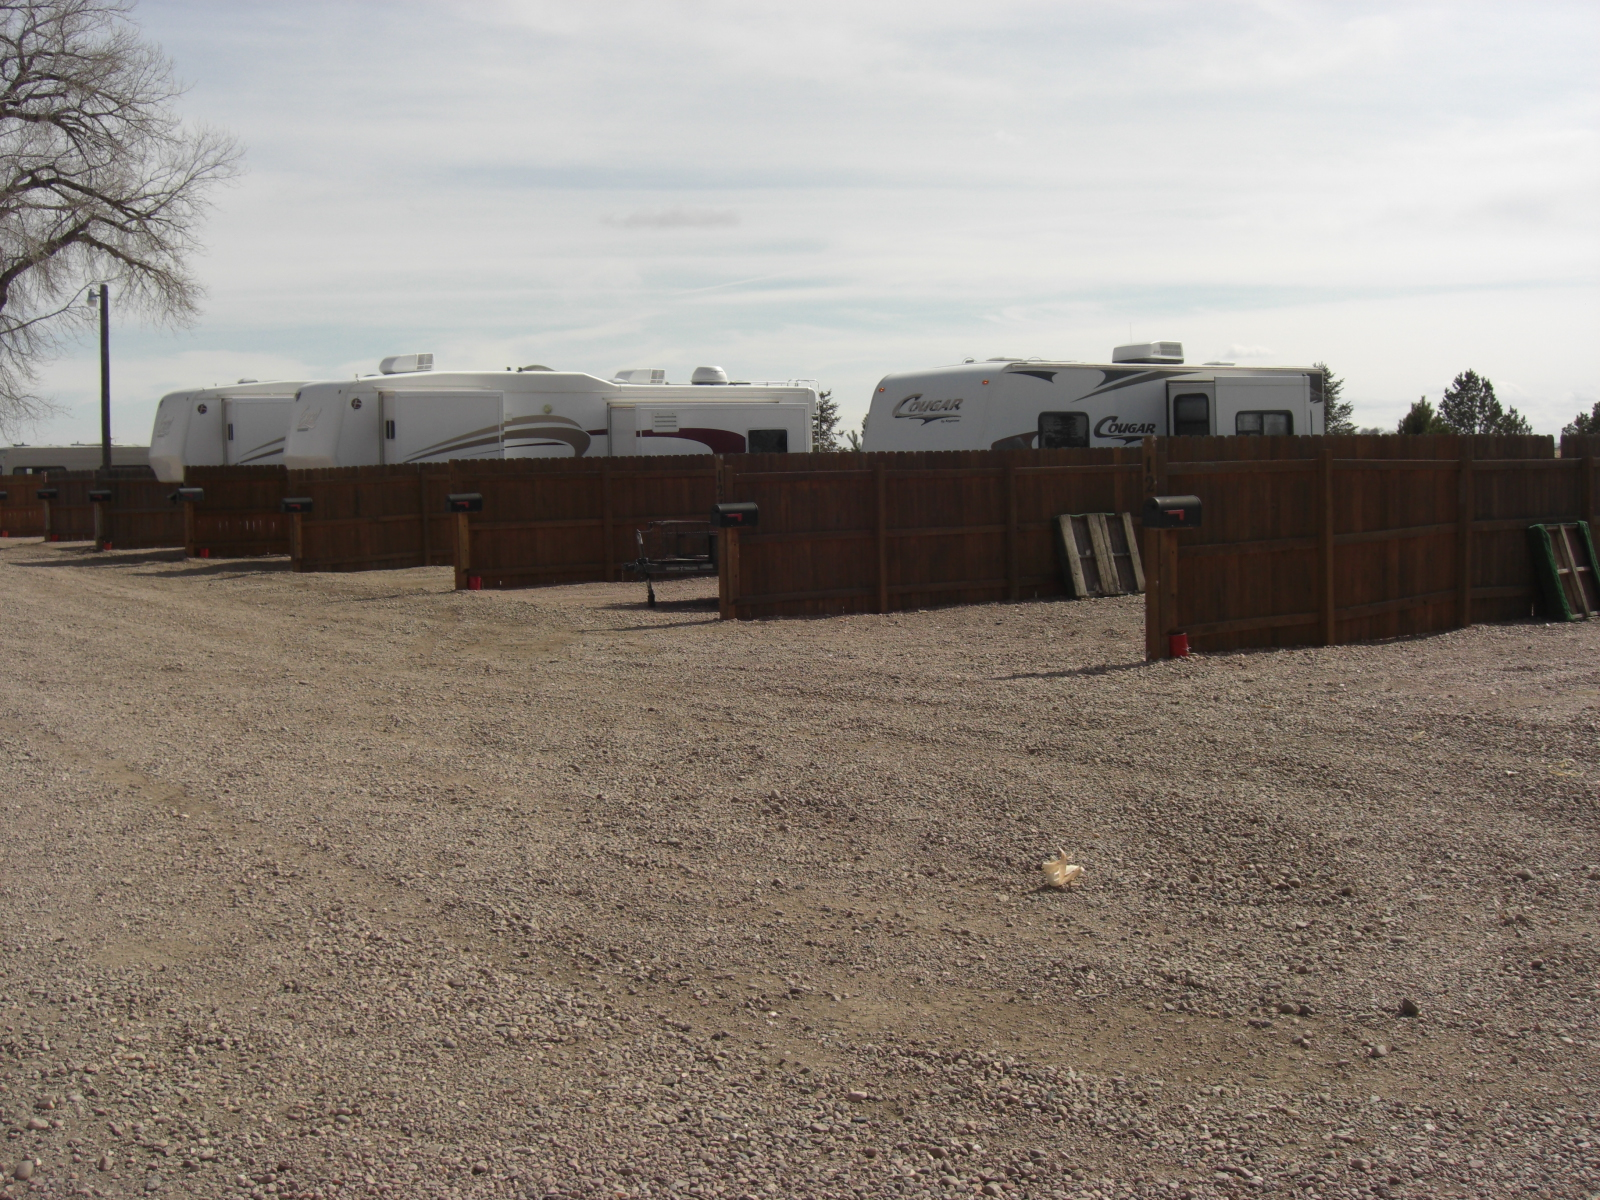 Country Comfort Motel Rv Park Fort Morgan Co 80701 50 Amp Hookup Rent Is Based On 750 Kwh Usage Far Above The Average In This Over Past 5 Years Fairness To All Additional Will Be Imposed If Your